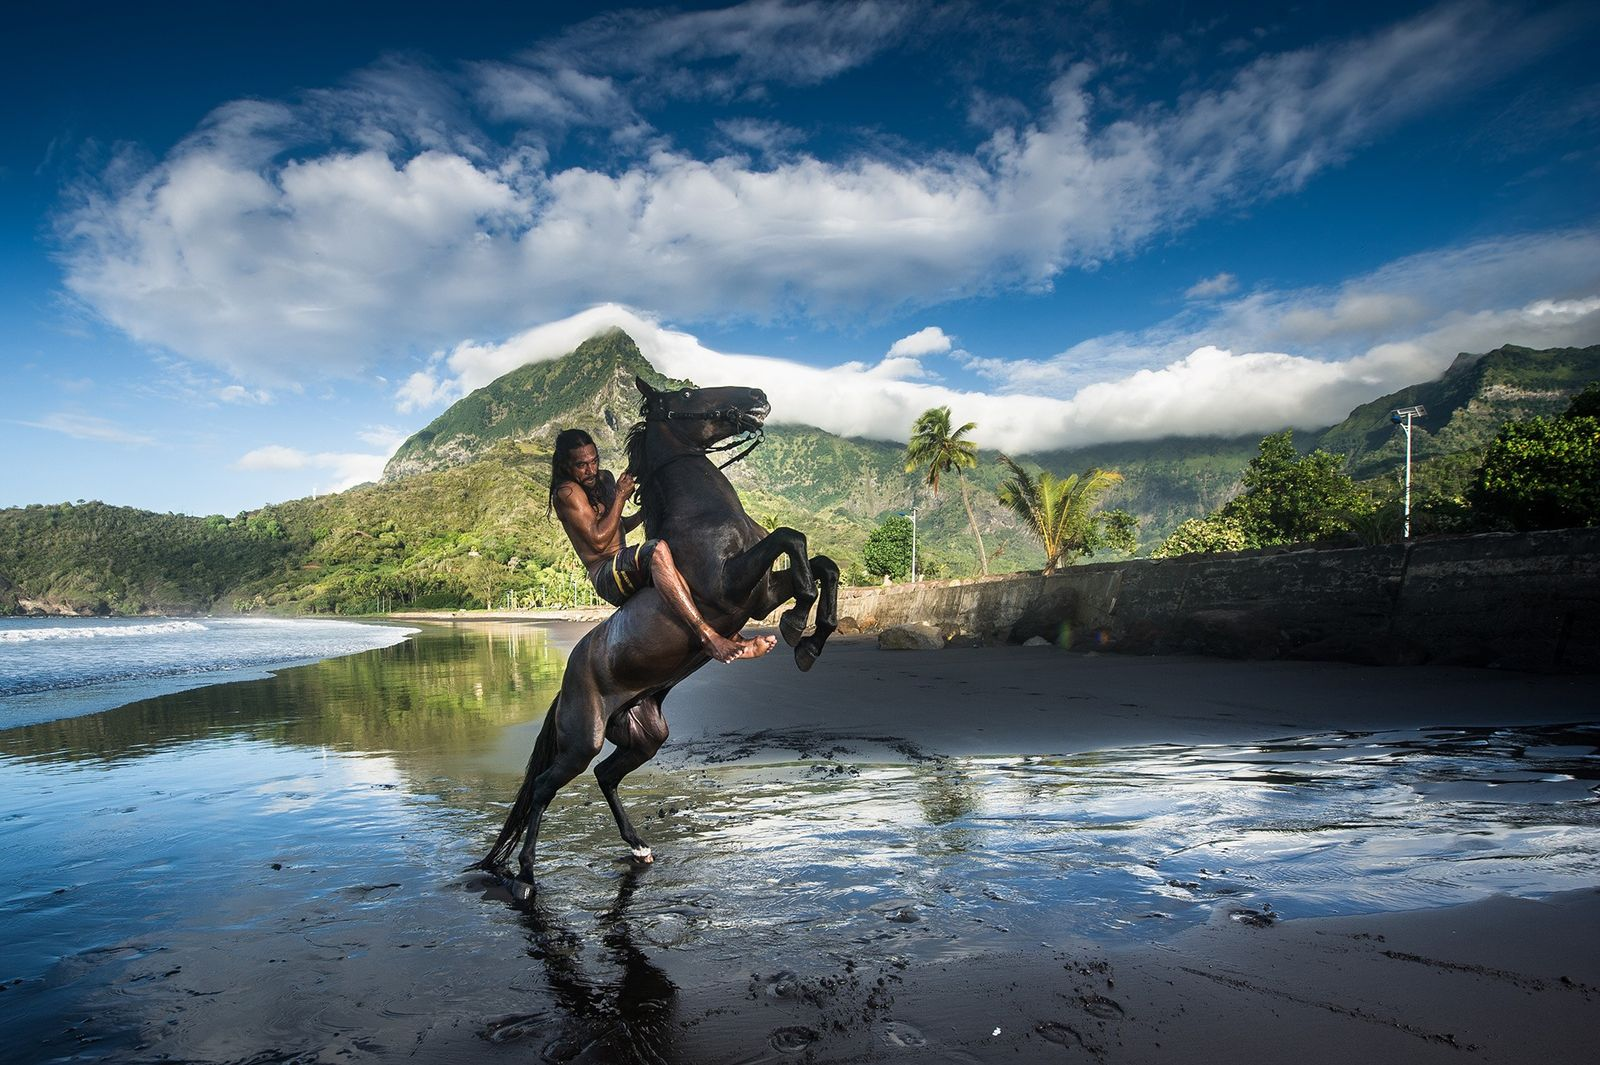 Meet the last horsemen of these paradise islands